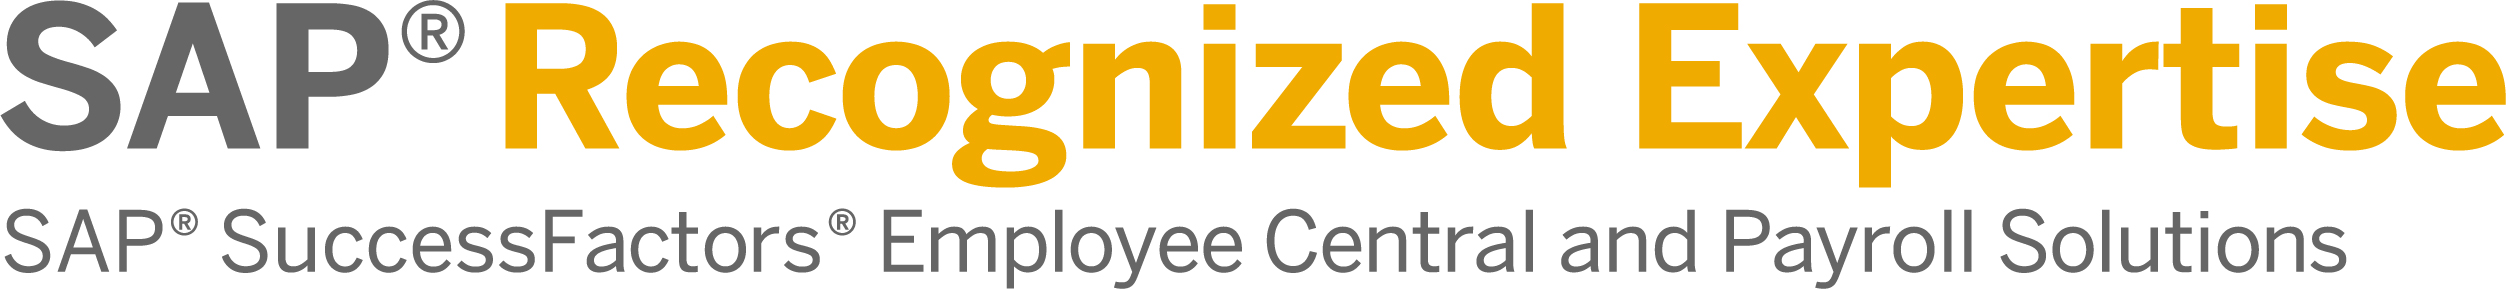 SuccessFactors Recognized Expertise Employee Central